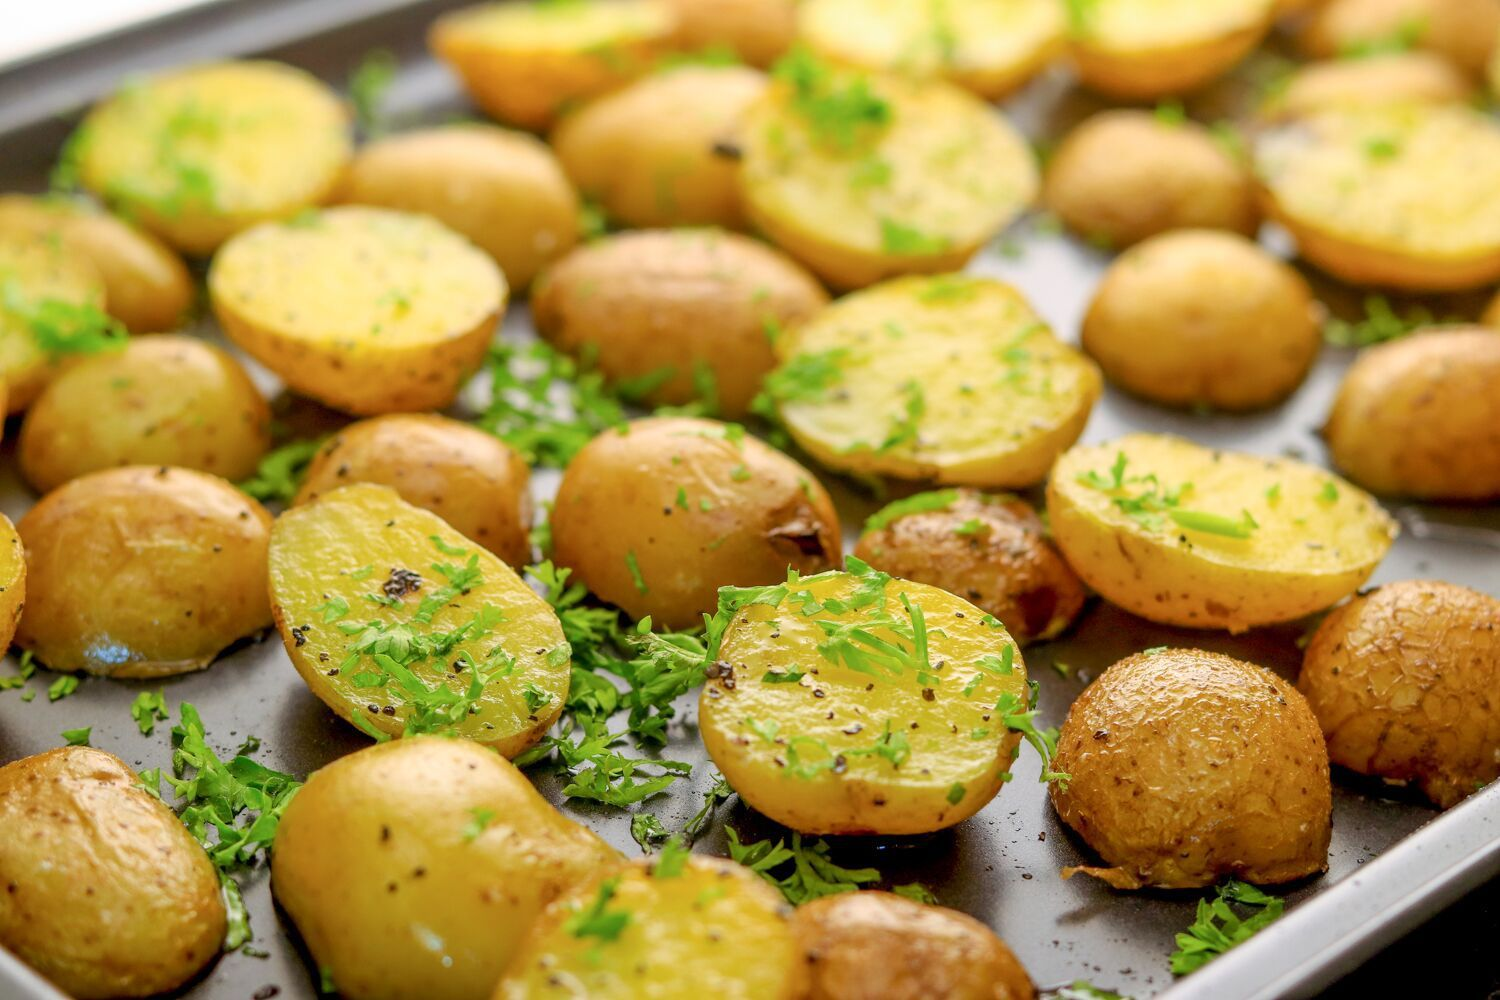 Quick Oven Roasted Baby Potatoes Recipe In 2020 Roasted Baby Potatoes Oven Roasted Baby Potatoes Potato Recipes